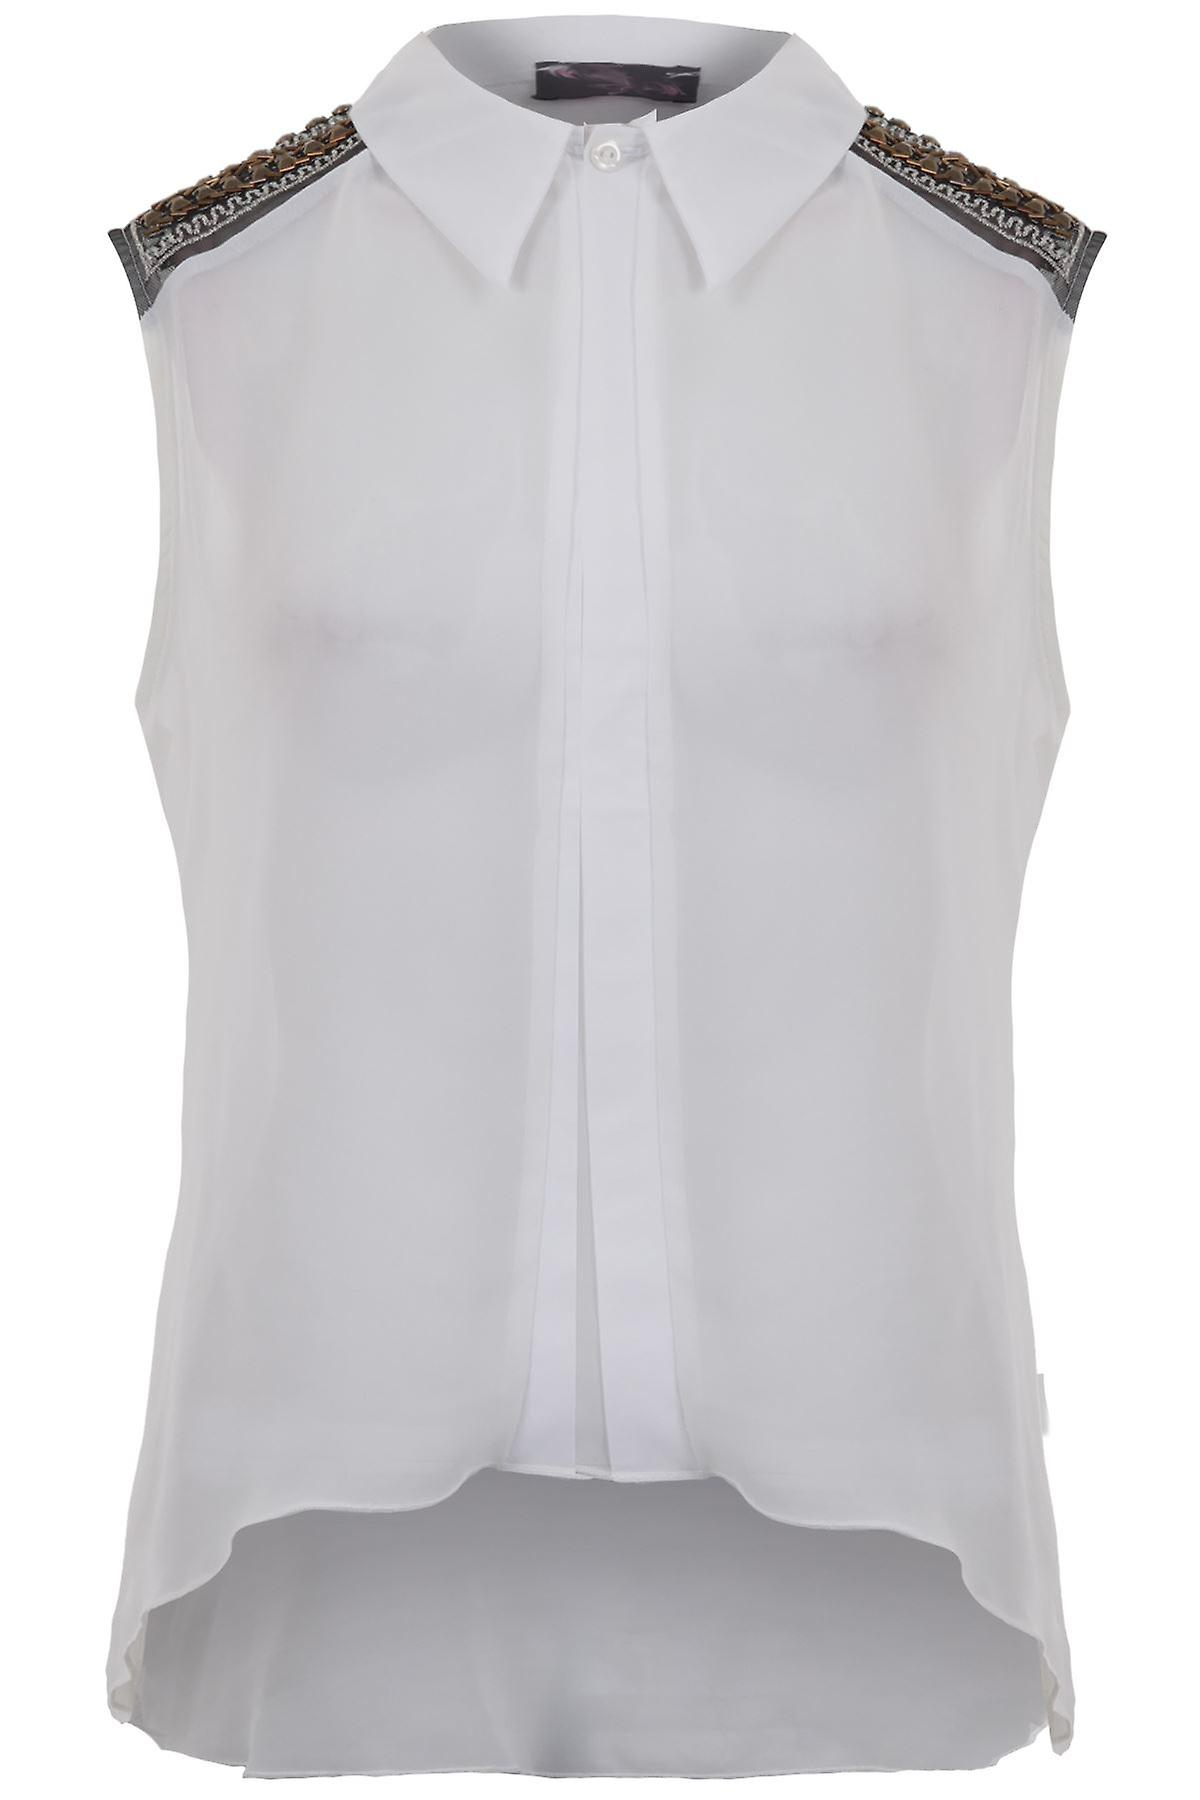 Ladies Sleeveless Shoulder Studded Pattern Chiffon Top Women's Shirt Blouse